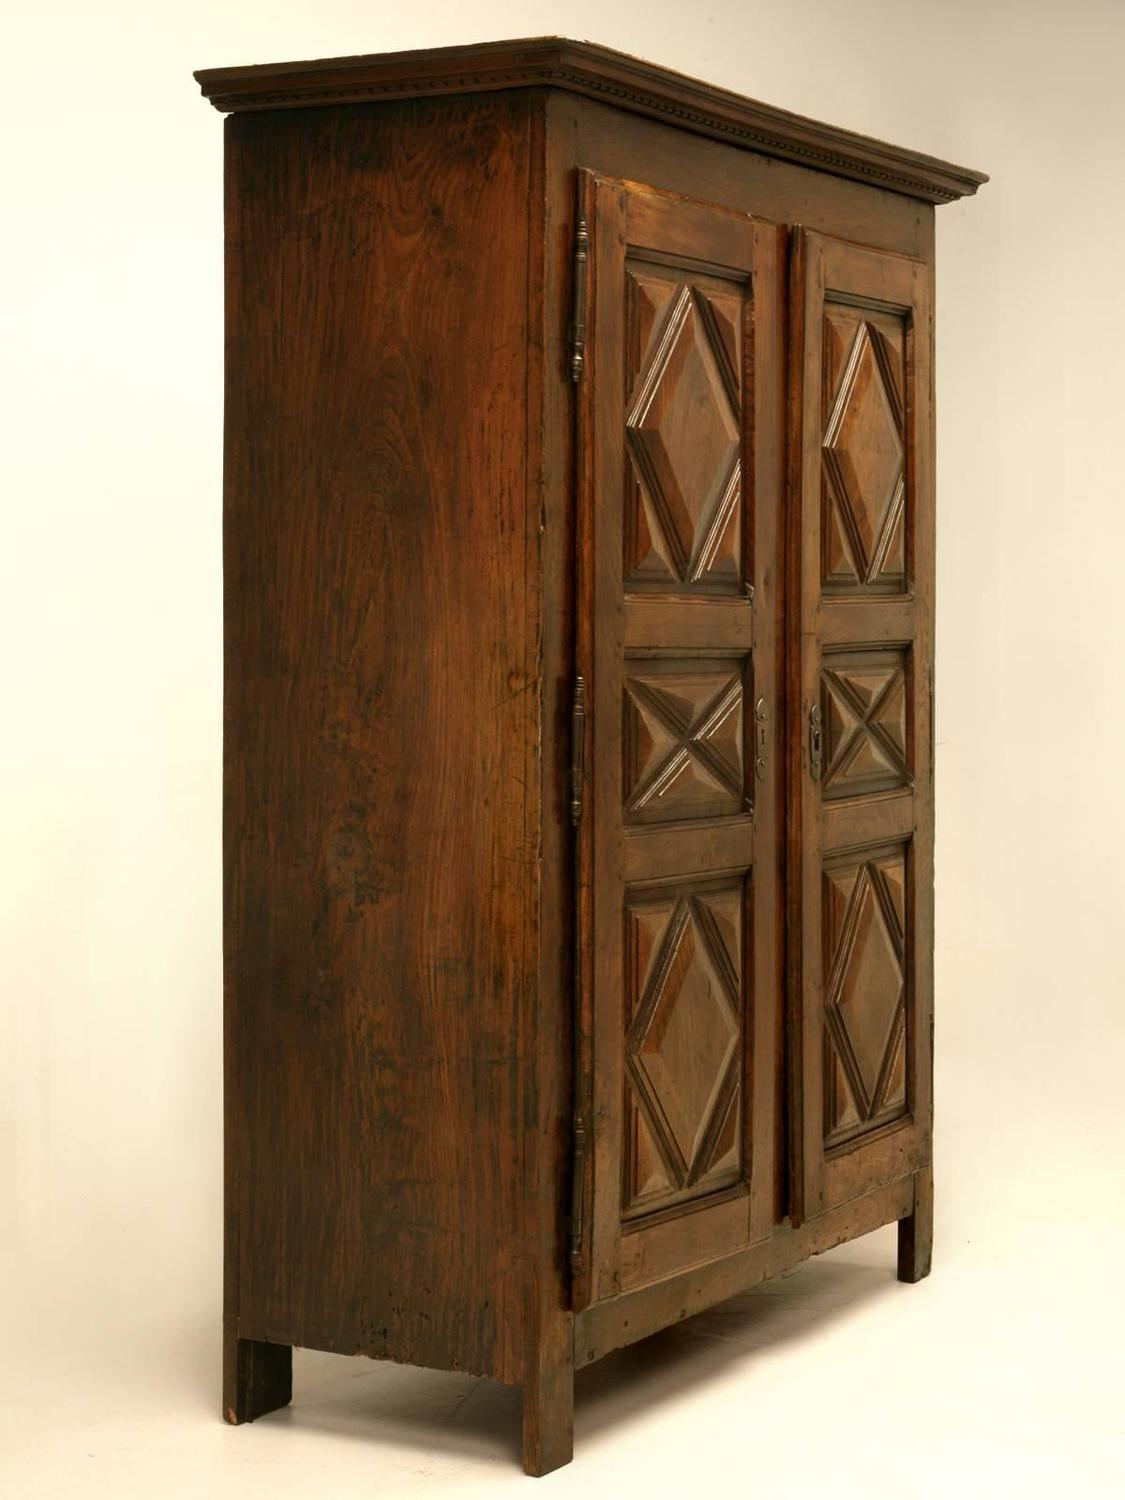 antique french louis xiii style armoire from the 1700 39 s. Black Bedroom Furniture Sets. Home Design Ideas